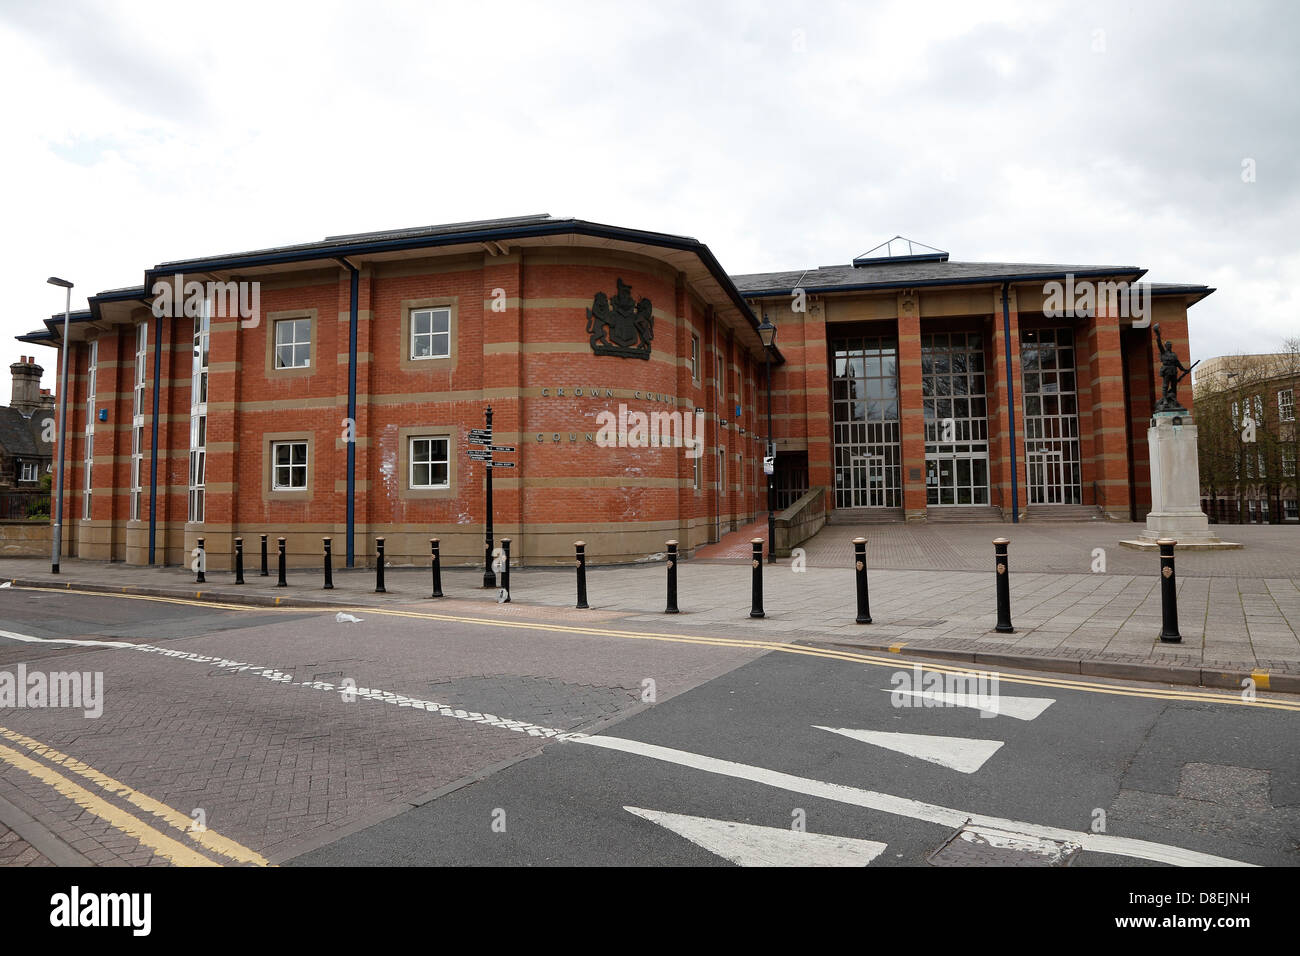 crown-and-county-court-building-earl-street-stafford-D8EJNH.jpg